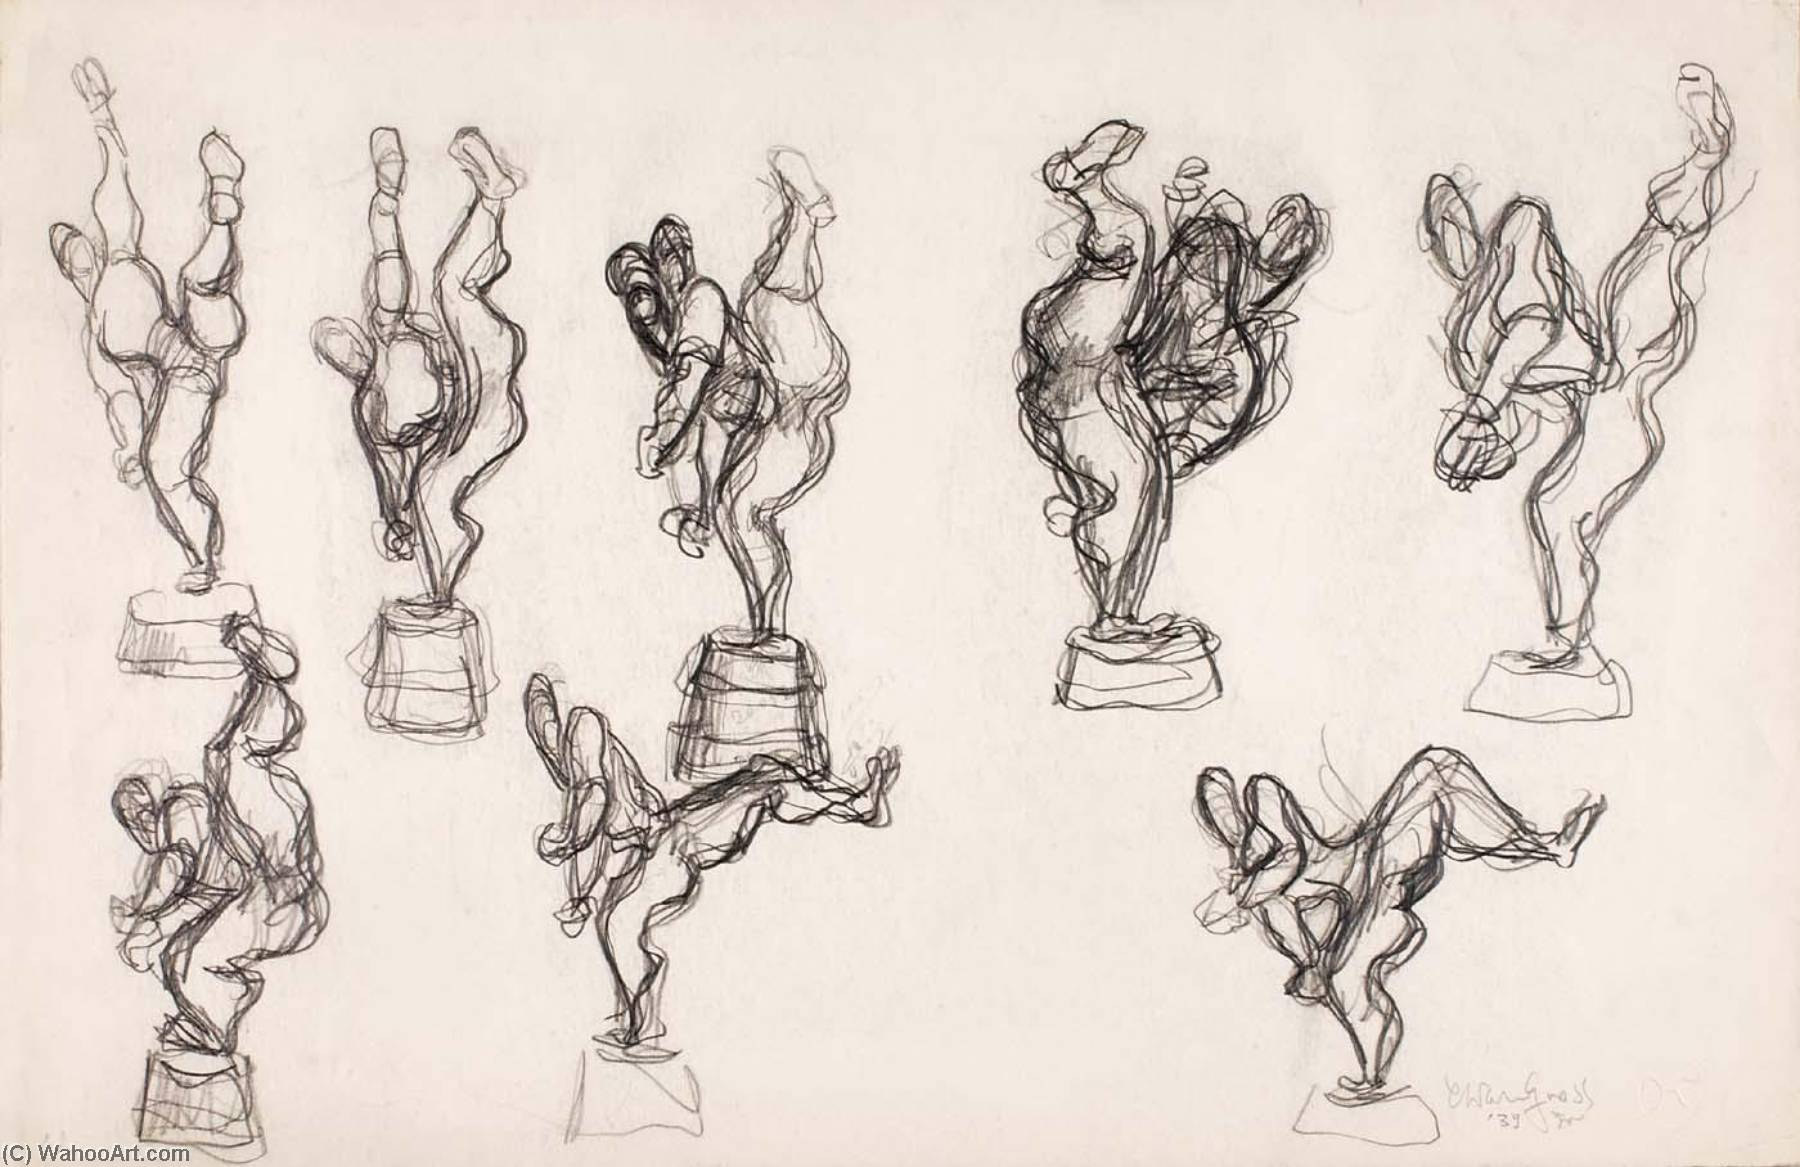 Pitcher (study for sculpture), Pencil by Chaim Gross